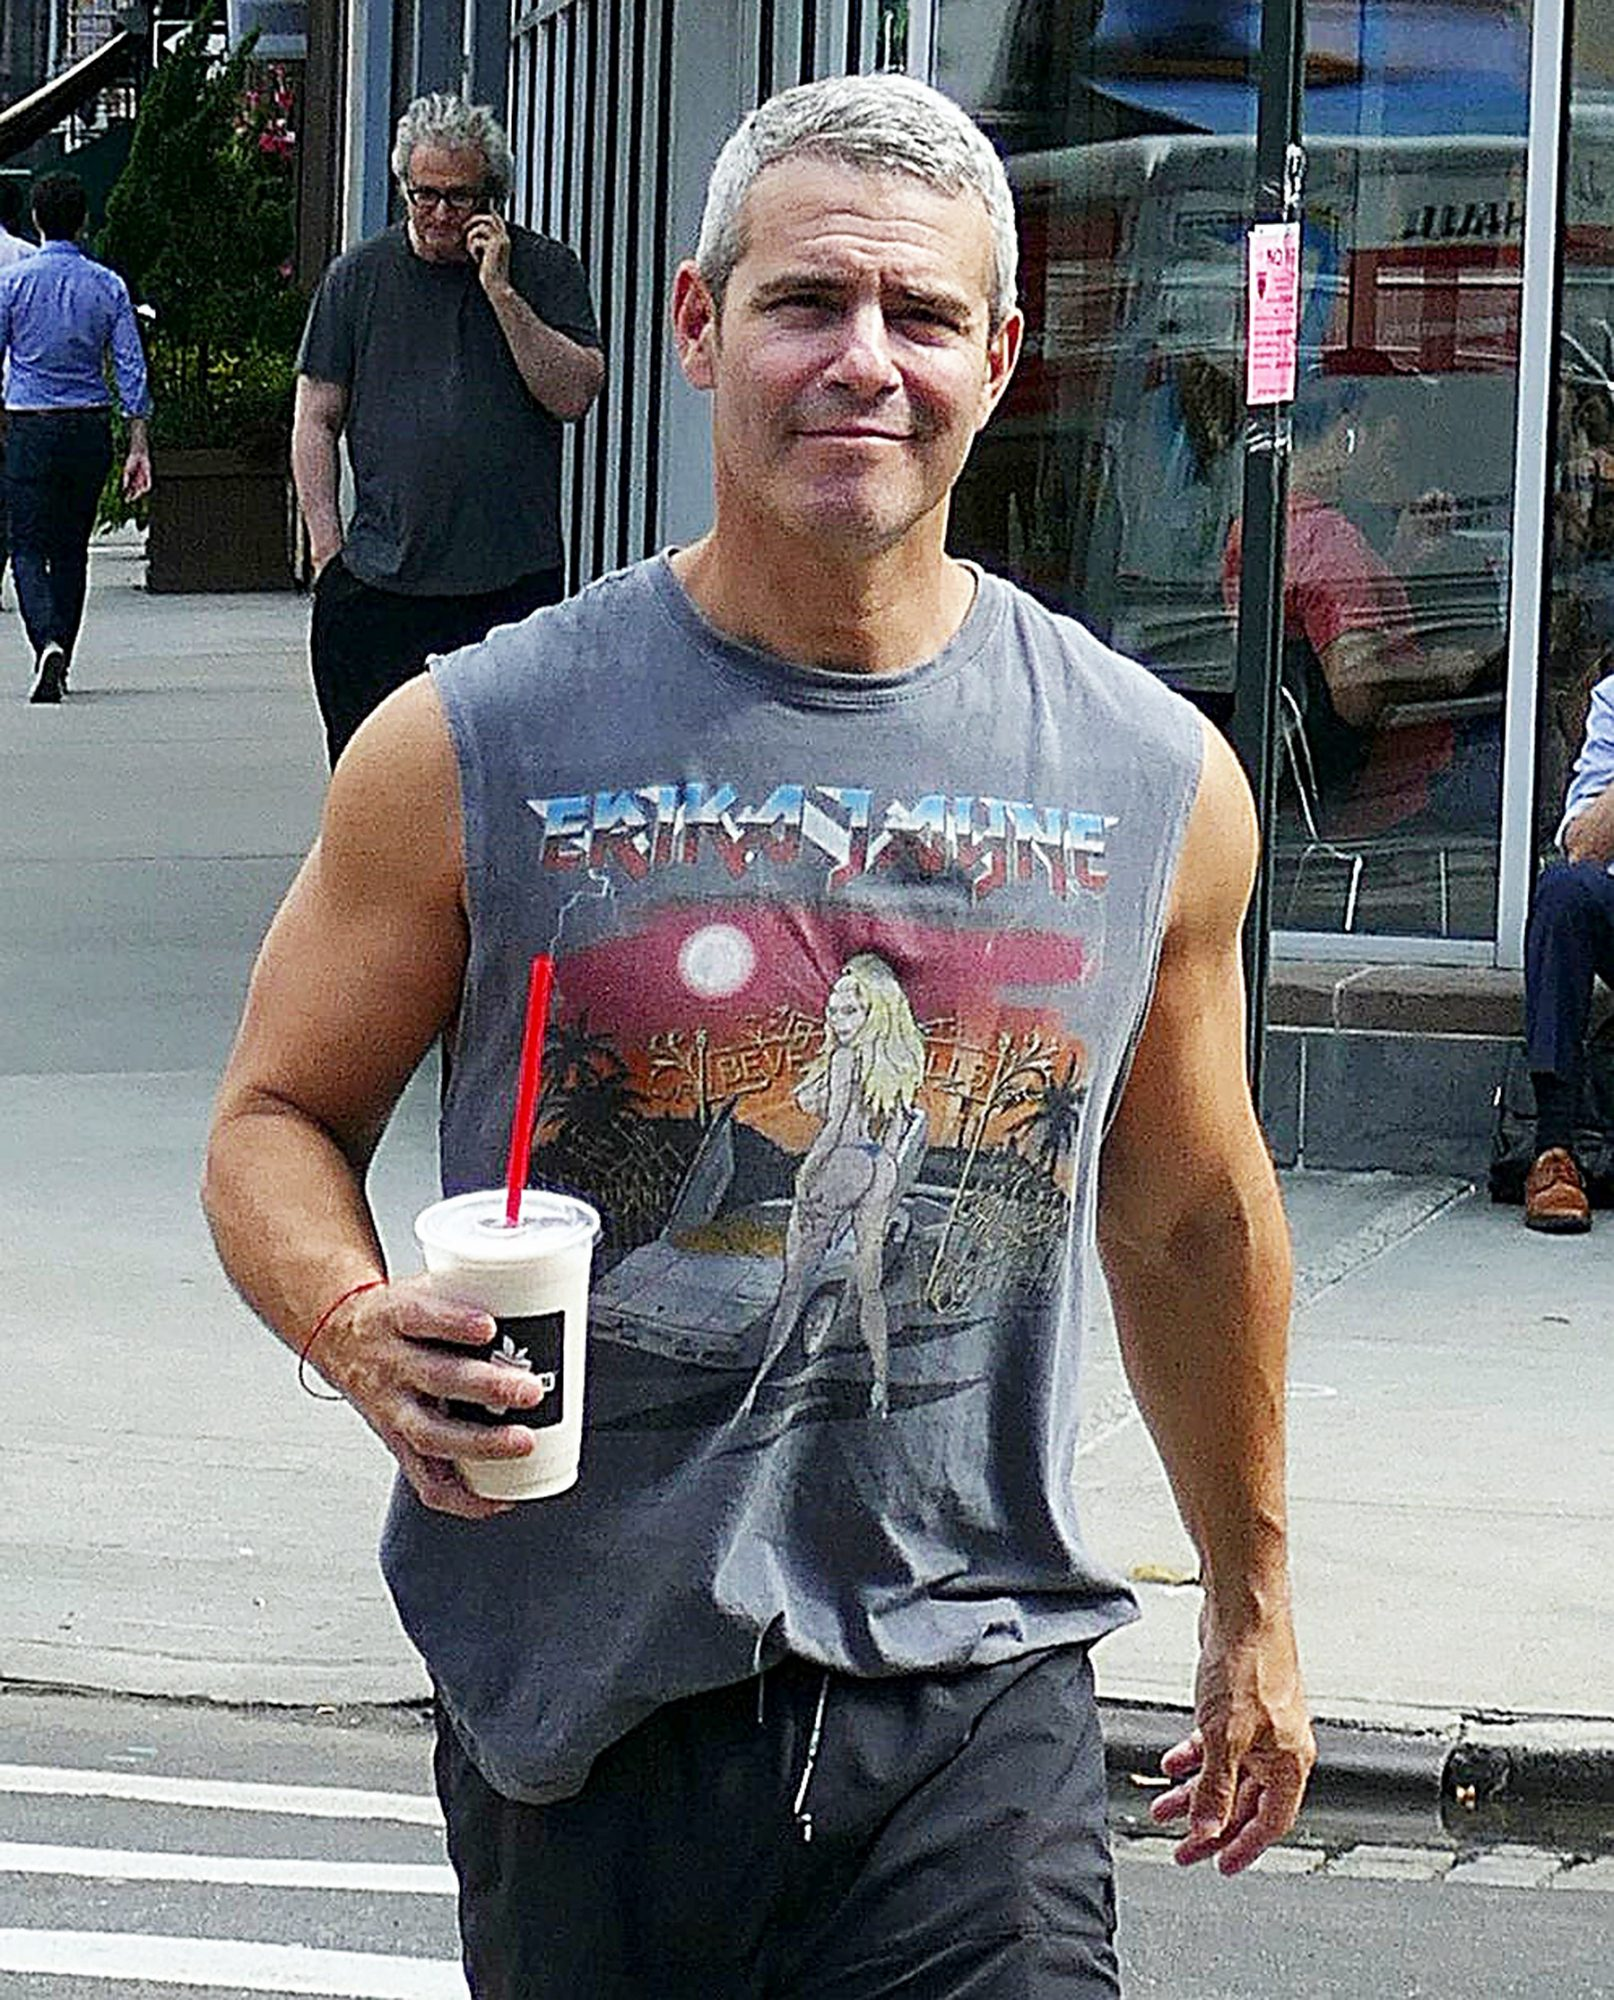 EXCLUSIVE: Andy Cohen Shows Off His Fit Figure While Leaving The Gym In New York